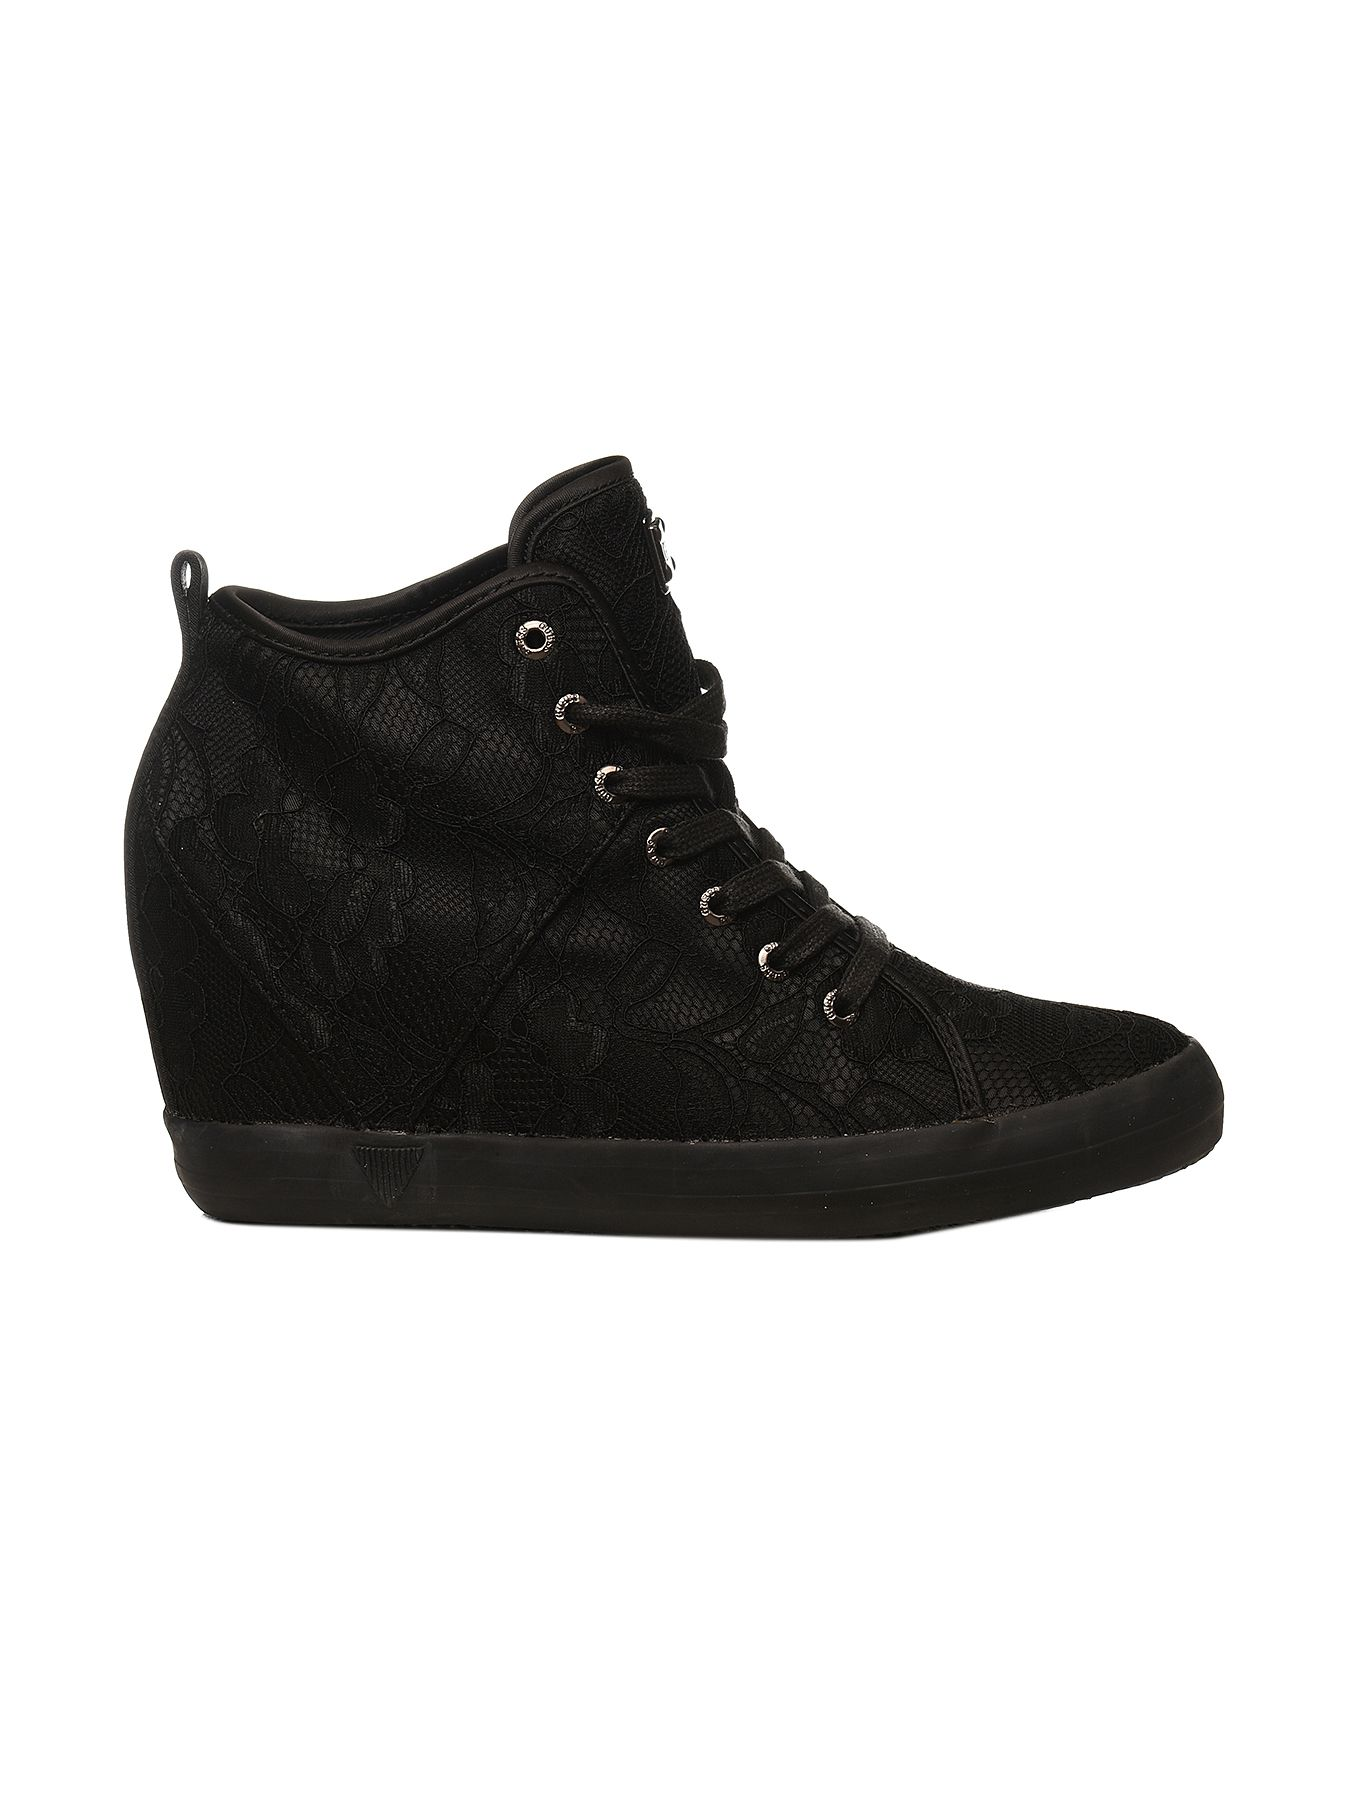 SCARPE SNEAKERS DONNA GUESS FLJIL3SAT12 BLACK PIZZO ZEPPA ORIGINALE PE NEW